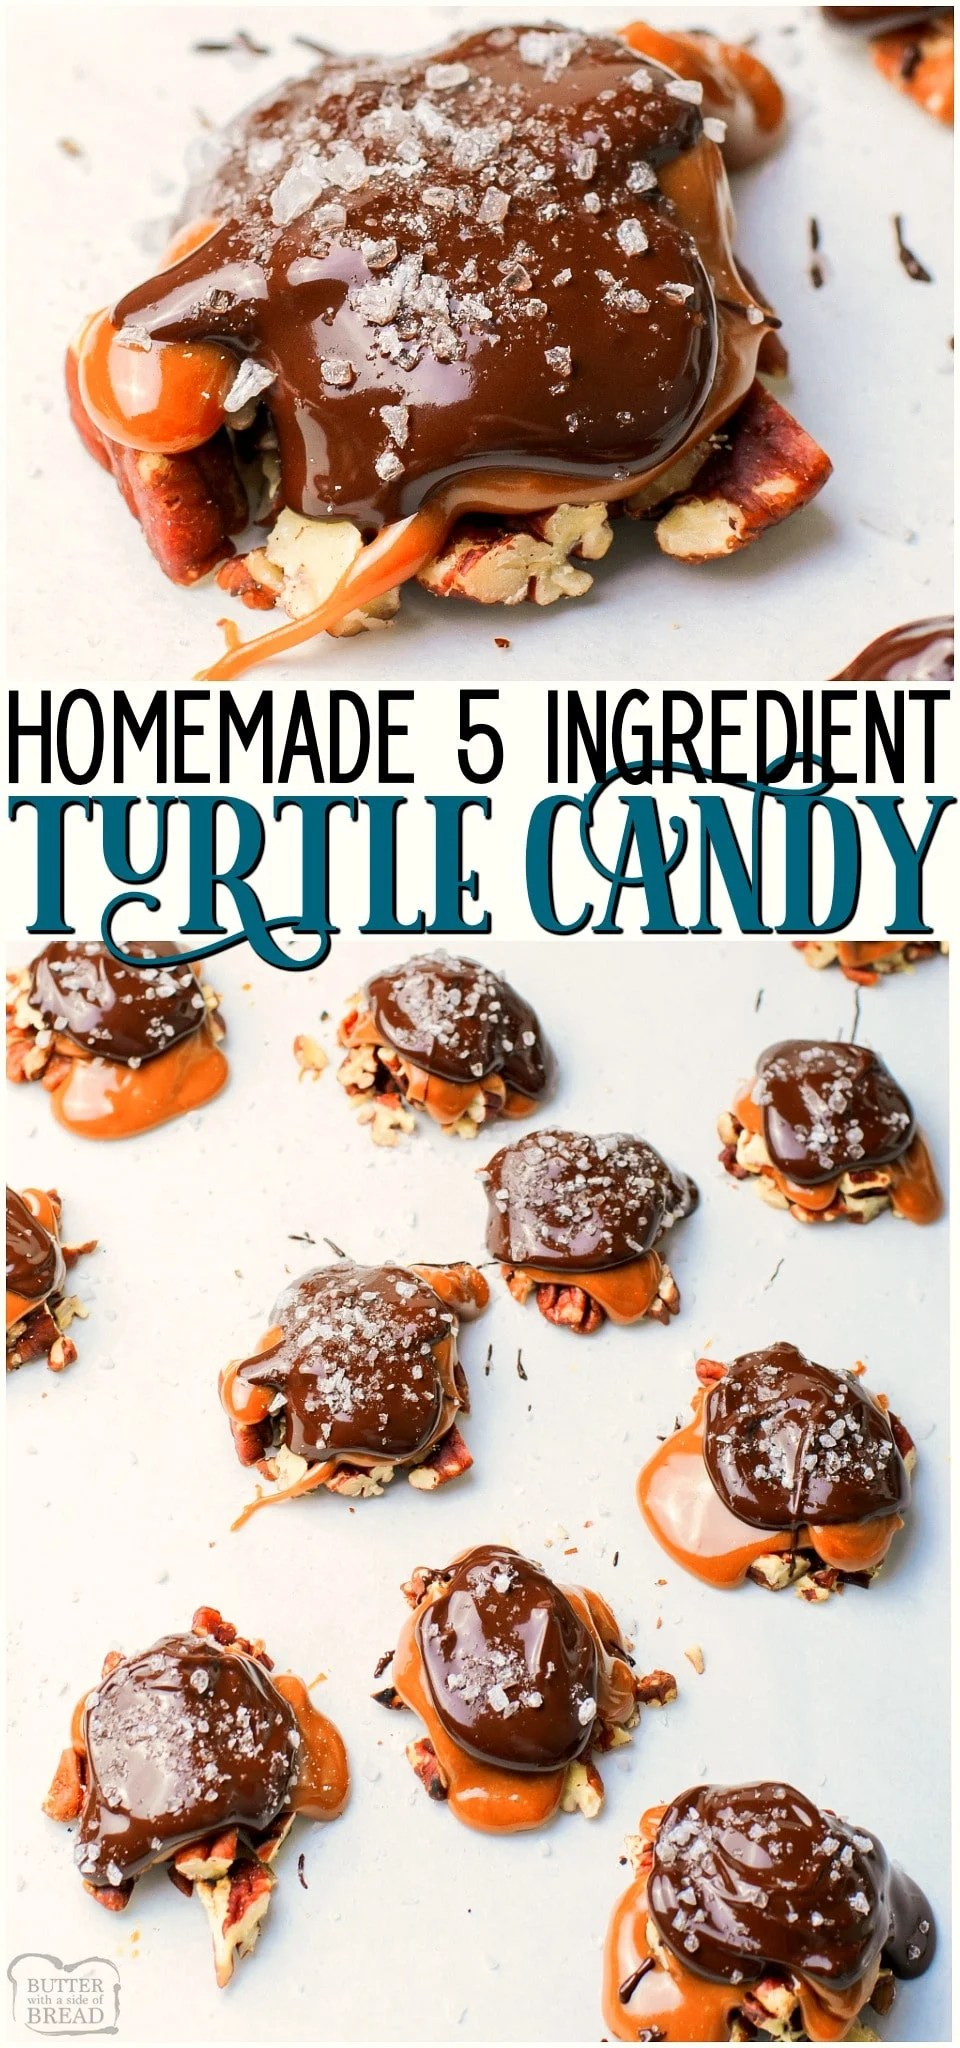 Homemade turtle candy recipe with just 5 ingredients & perfect for holiday dessert trays! With toasted pecans, melted chocolate, and gooey caramel in every bite, these easy to make candies are a perfect treat!